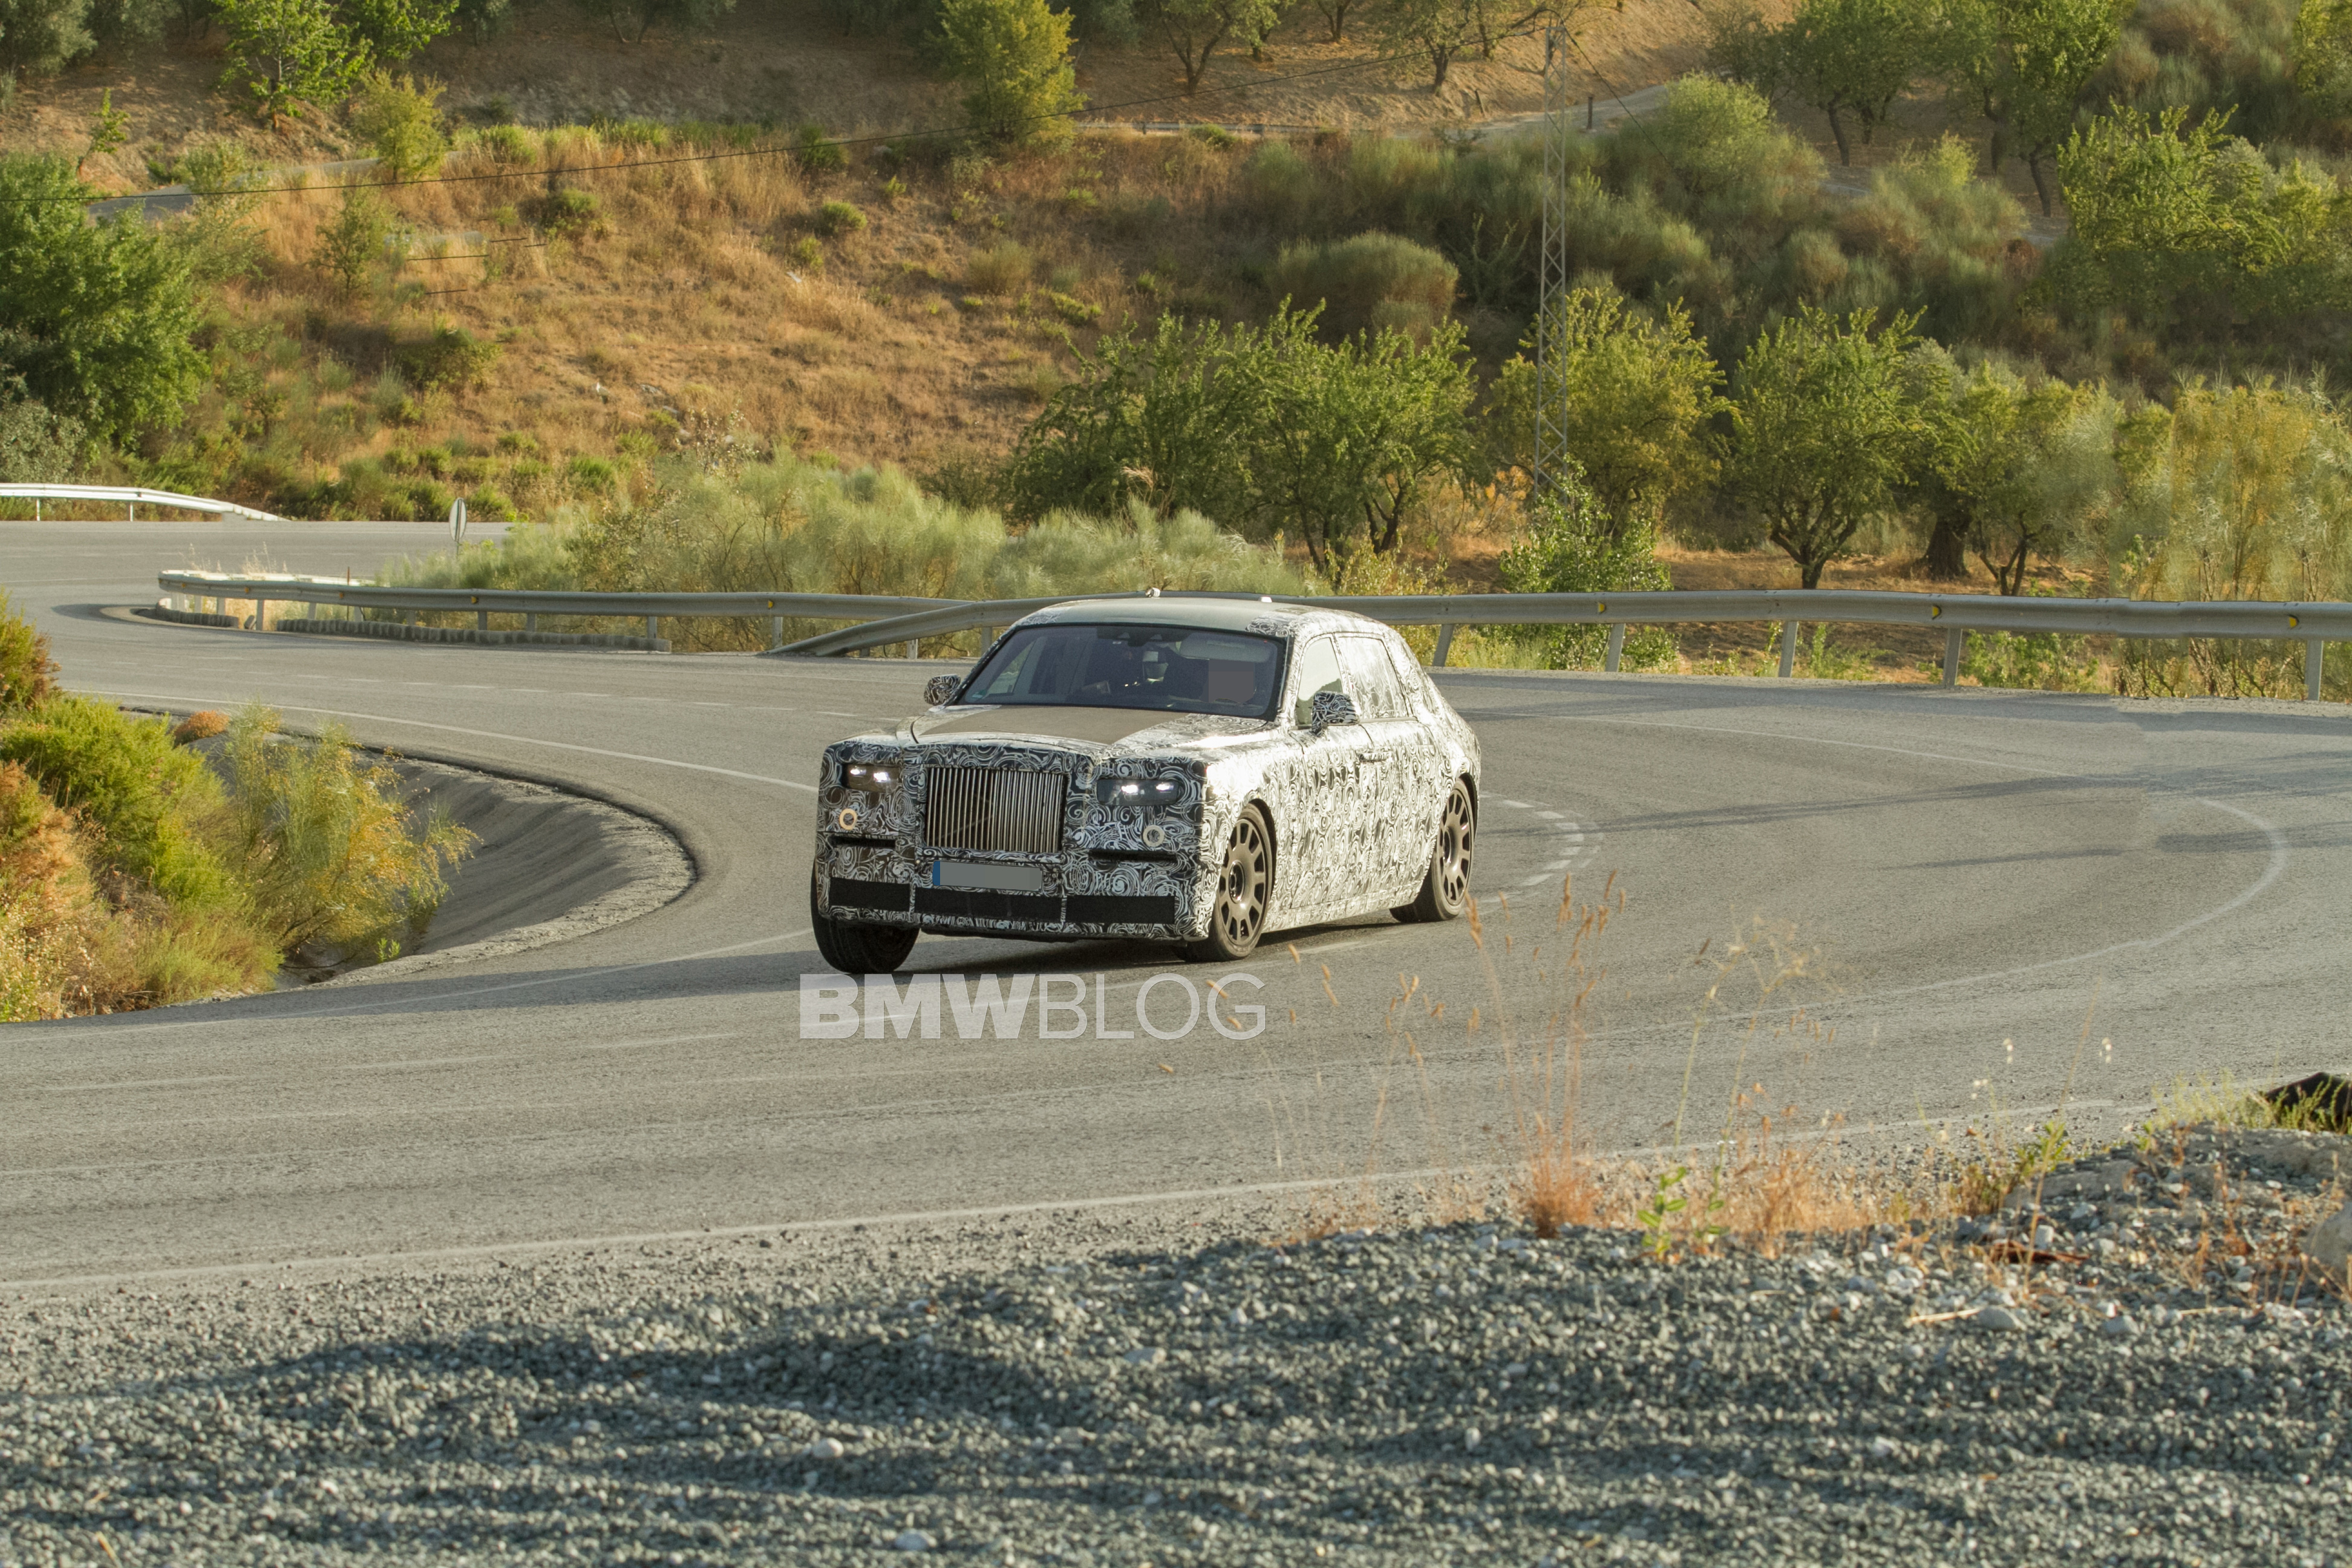 The new Rolls-Royce Phantom was spotted in Spain